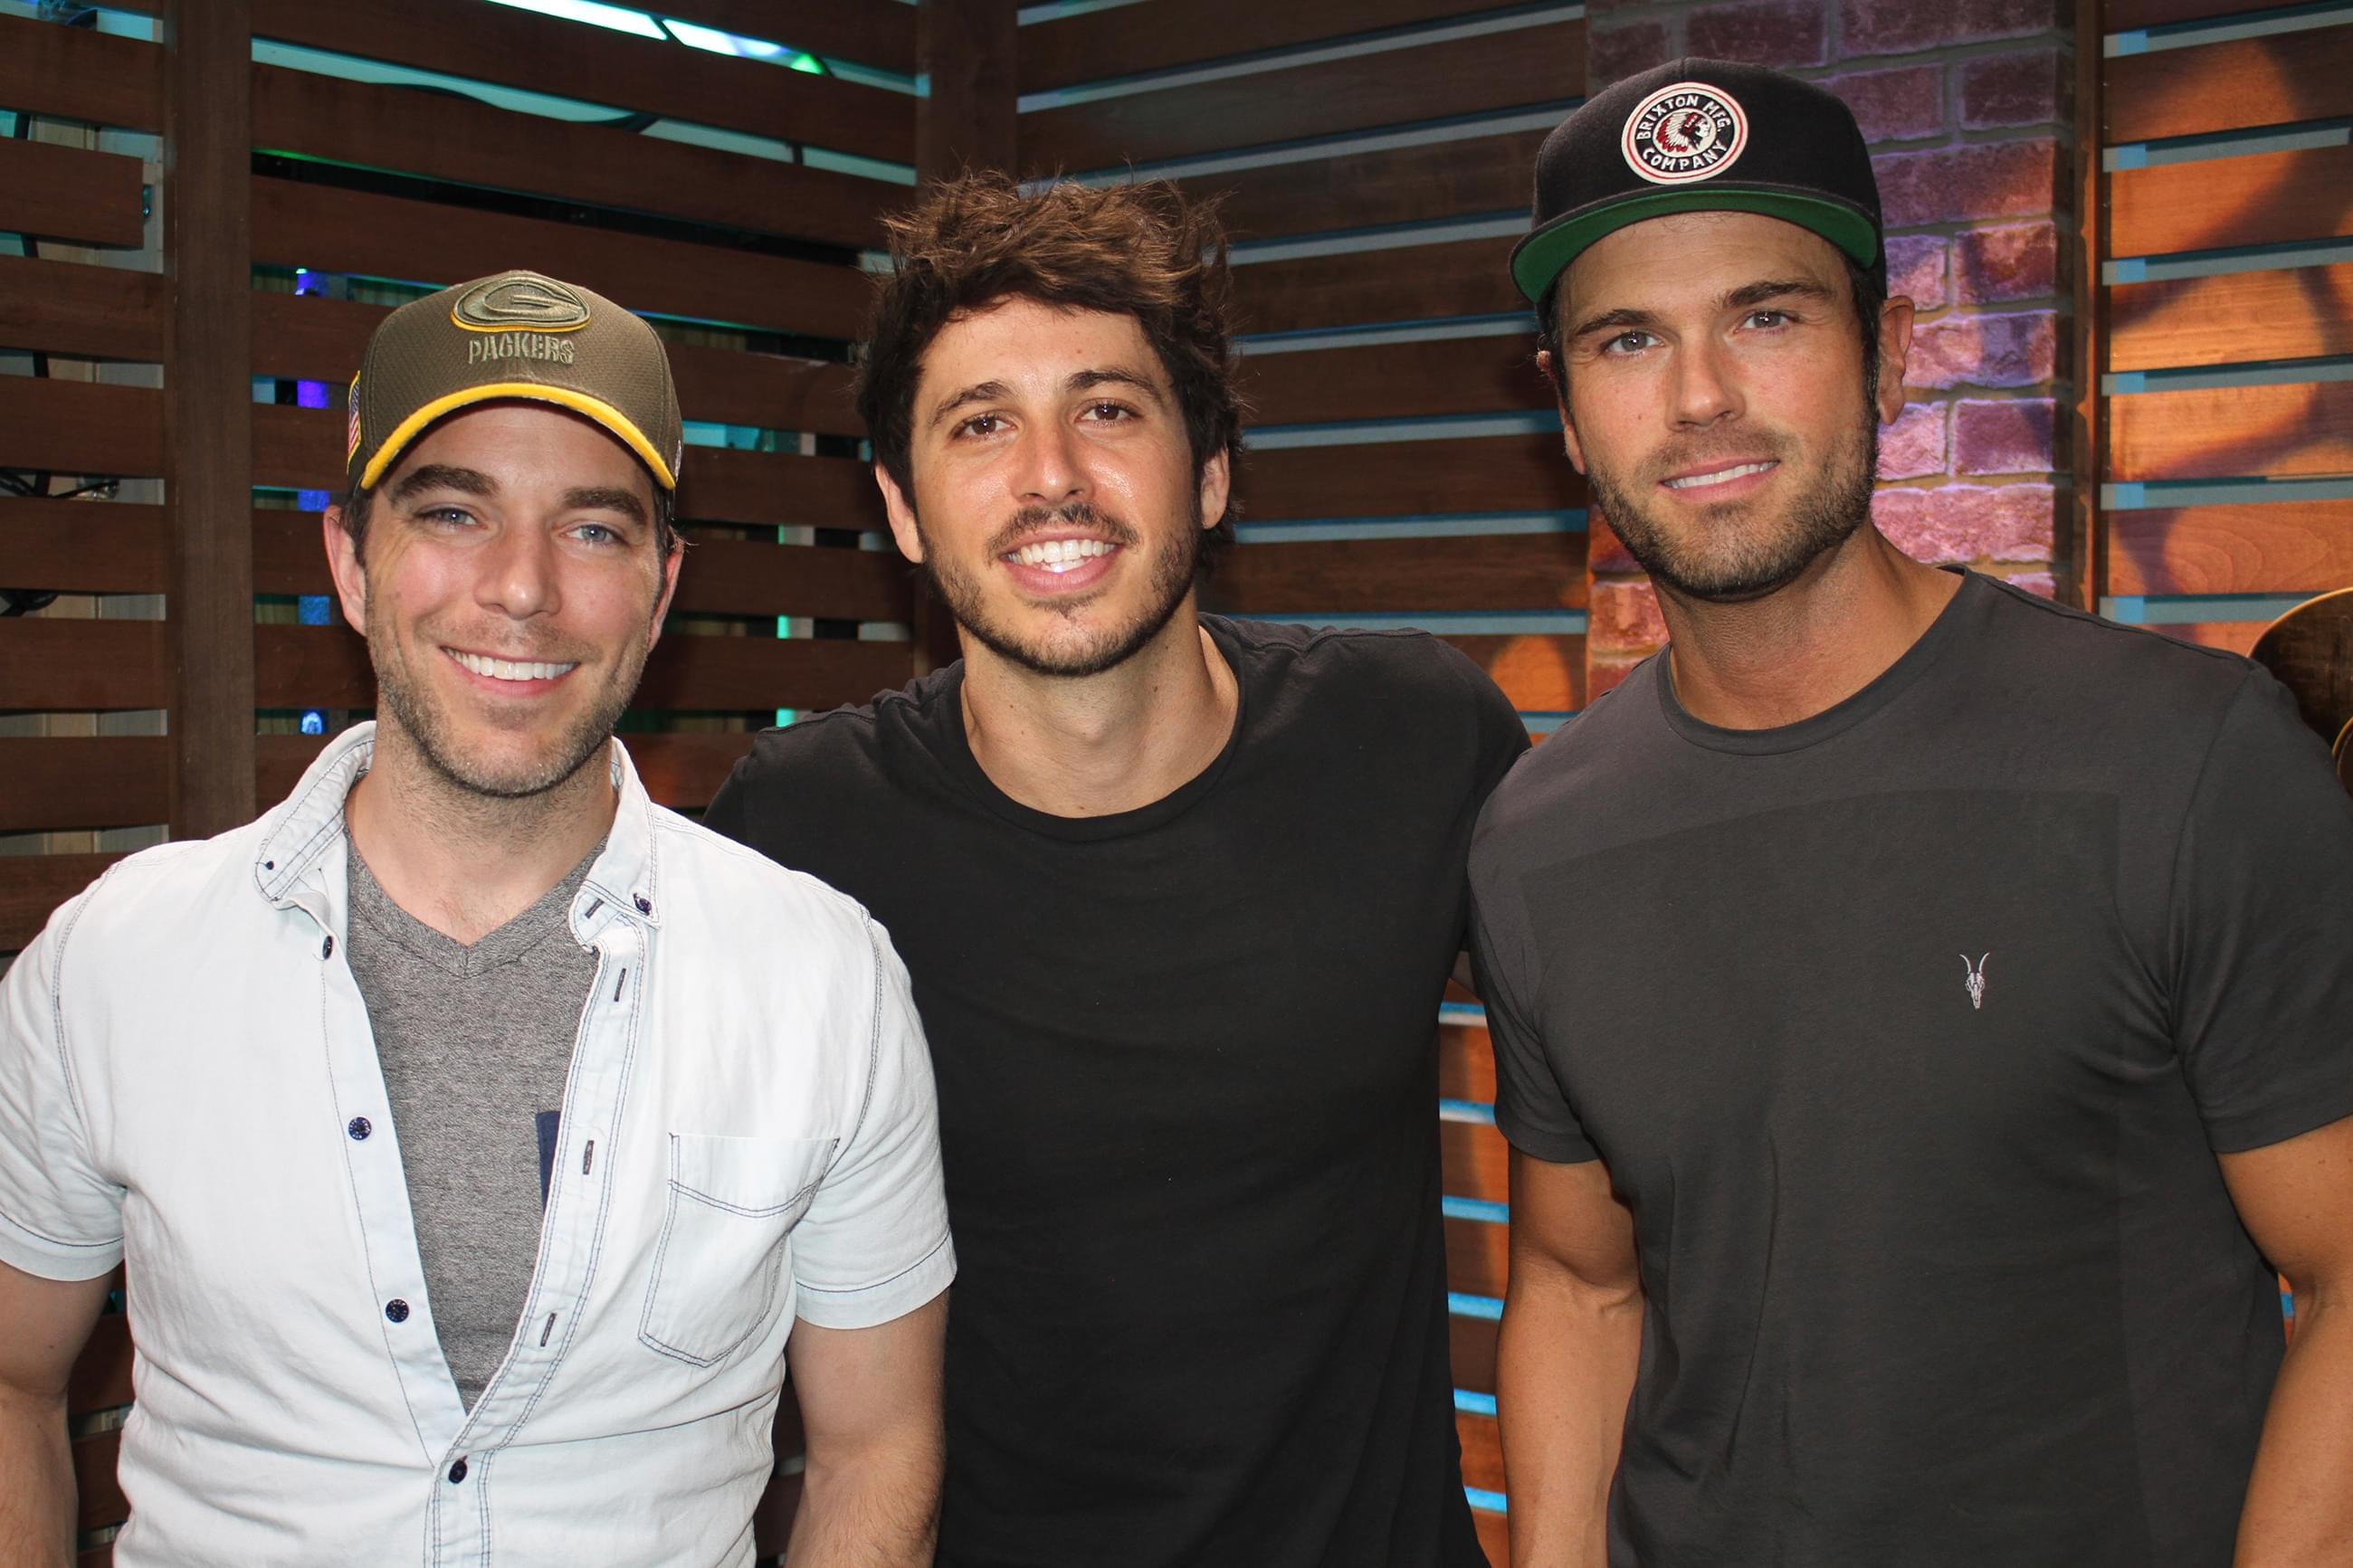 Morgan Evans Reveals the Many Inspirations Behind His New Music, Shares Hilarious Customs Story, Does a Garth Brooks Impression & MORE